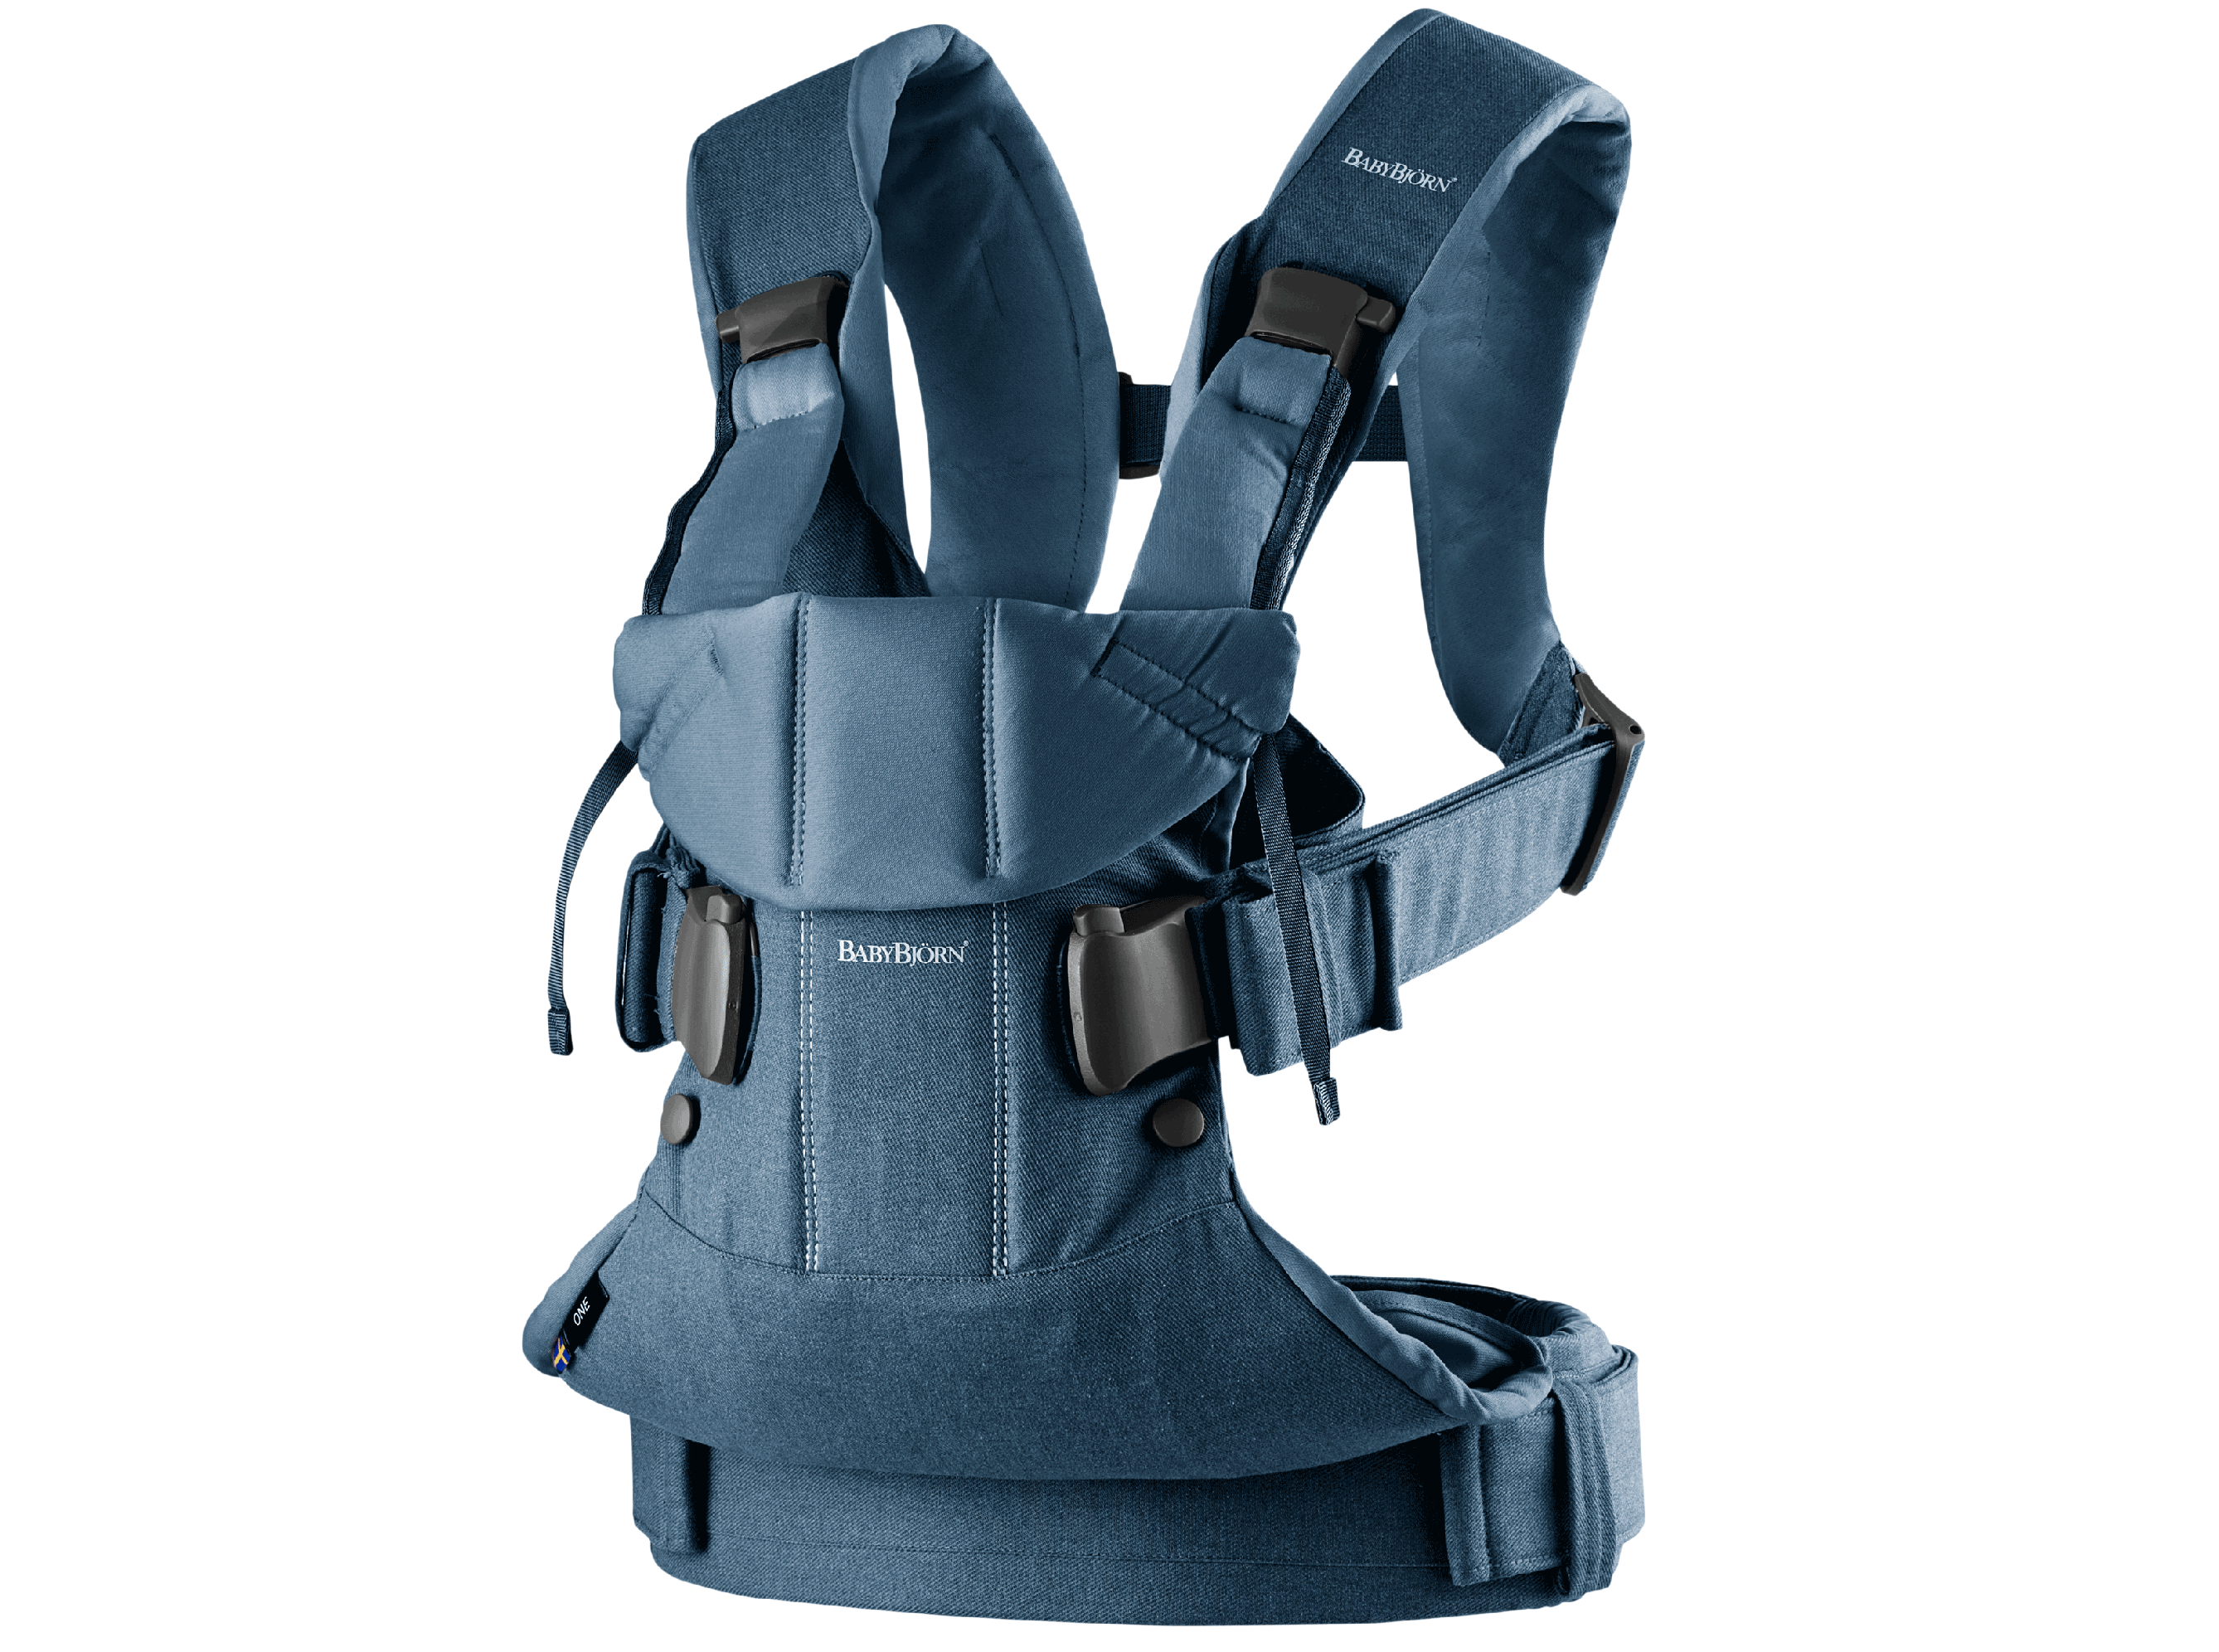 baby-carrier-one-classic-denim-midnight-blue-cotton-mix-098051-babybjorn